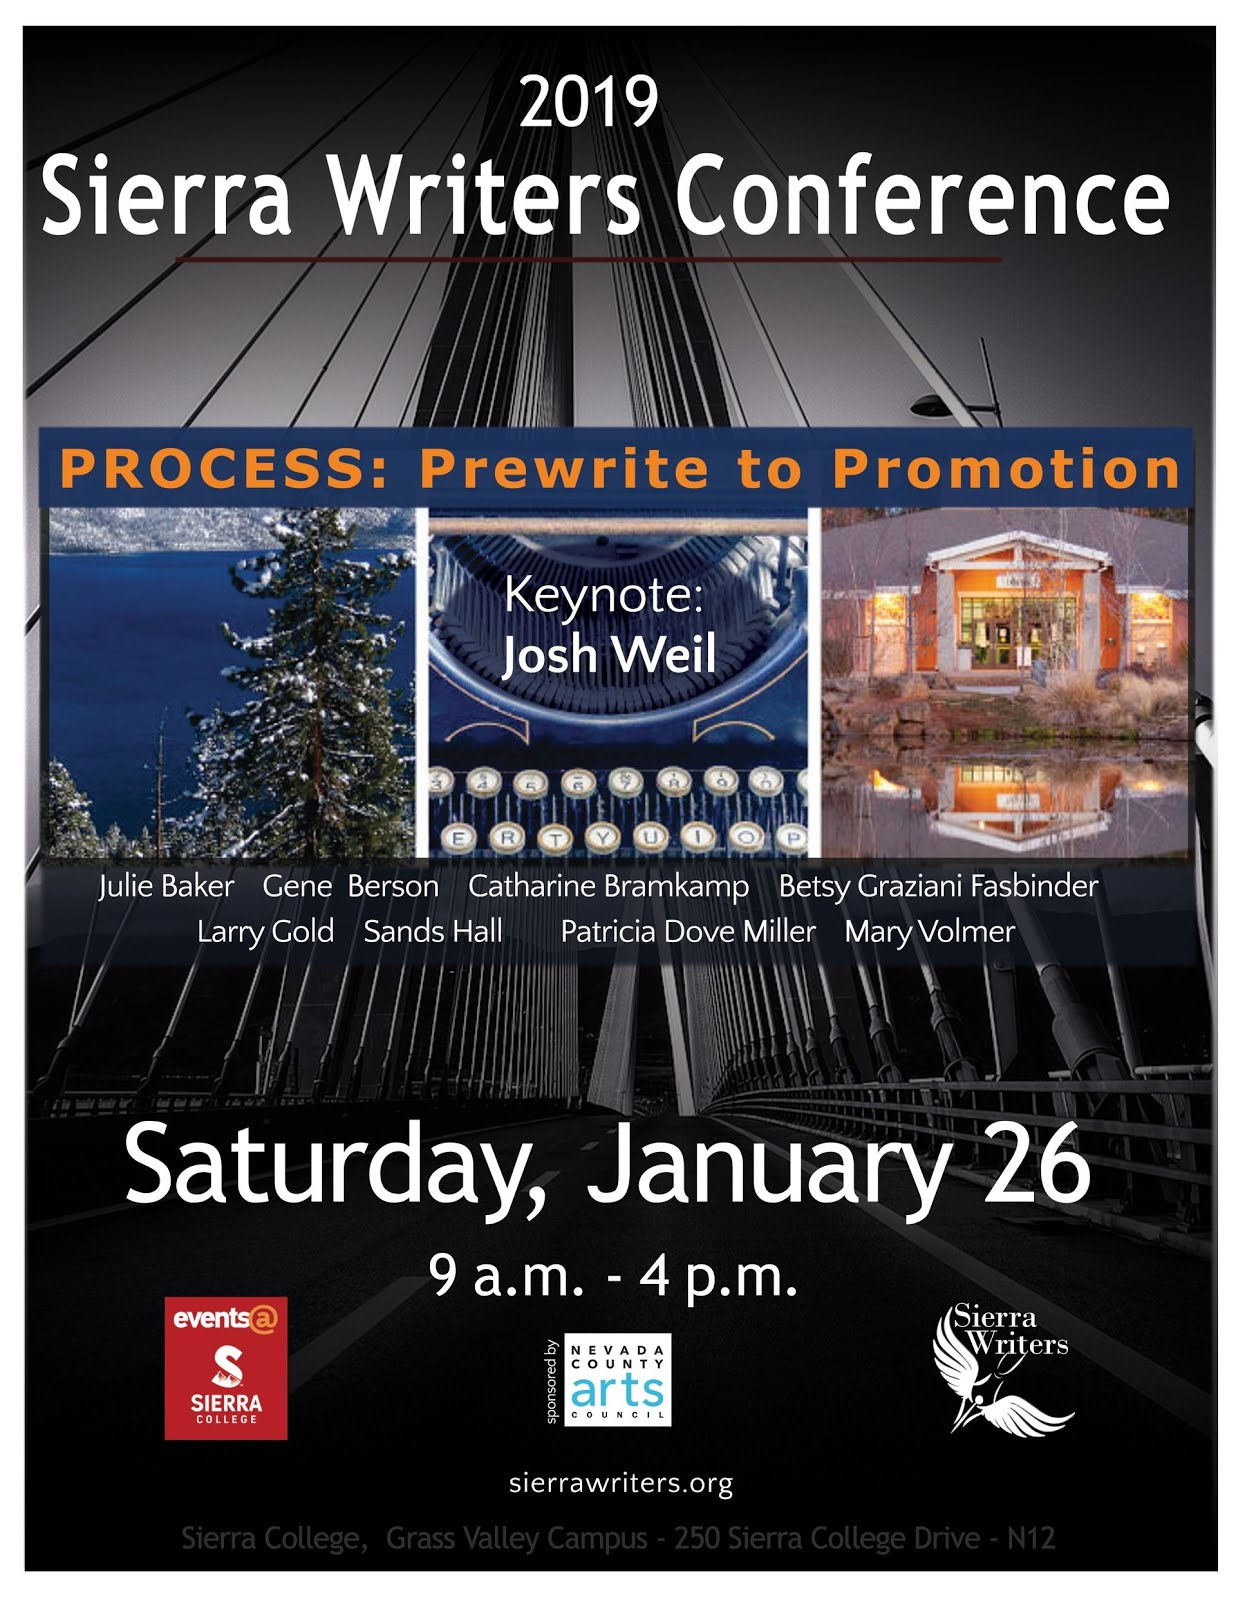 SIERRA WRITERS' CONFERENCE in Grass Valley Sat. (1/26)